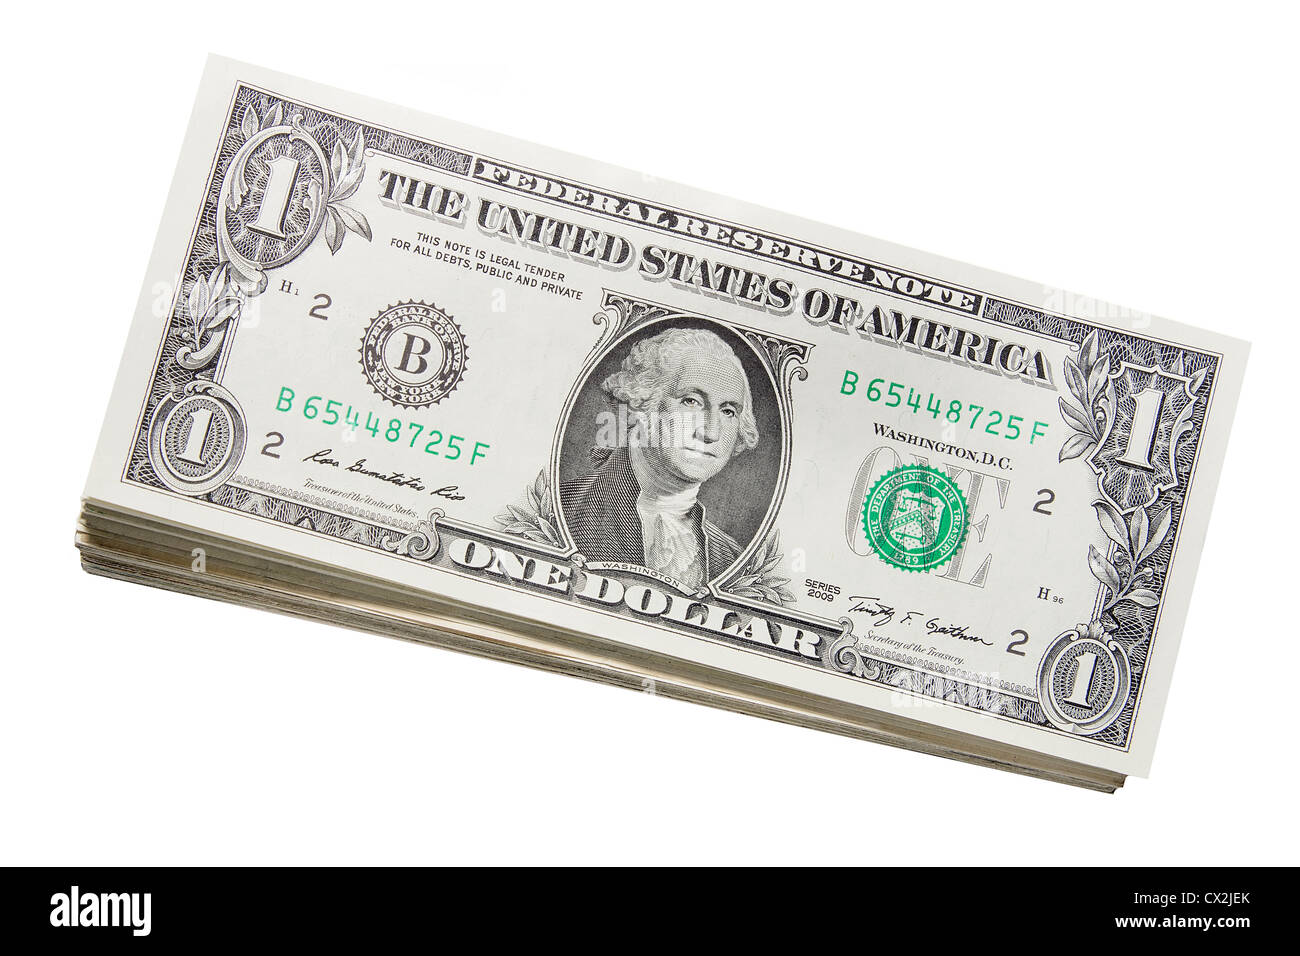 Stack of US One Dollar Bills Banknotes Isolated on White Background - Stock Image